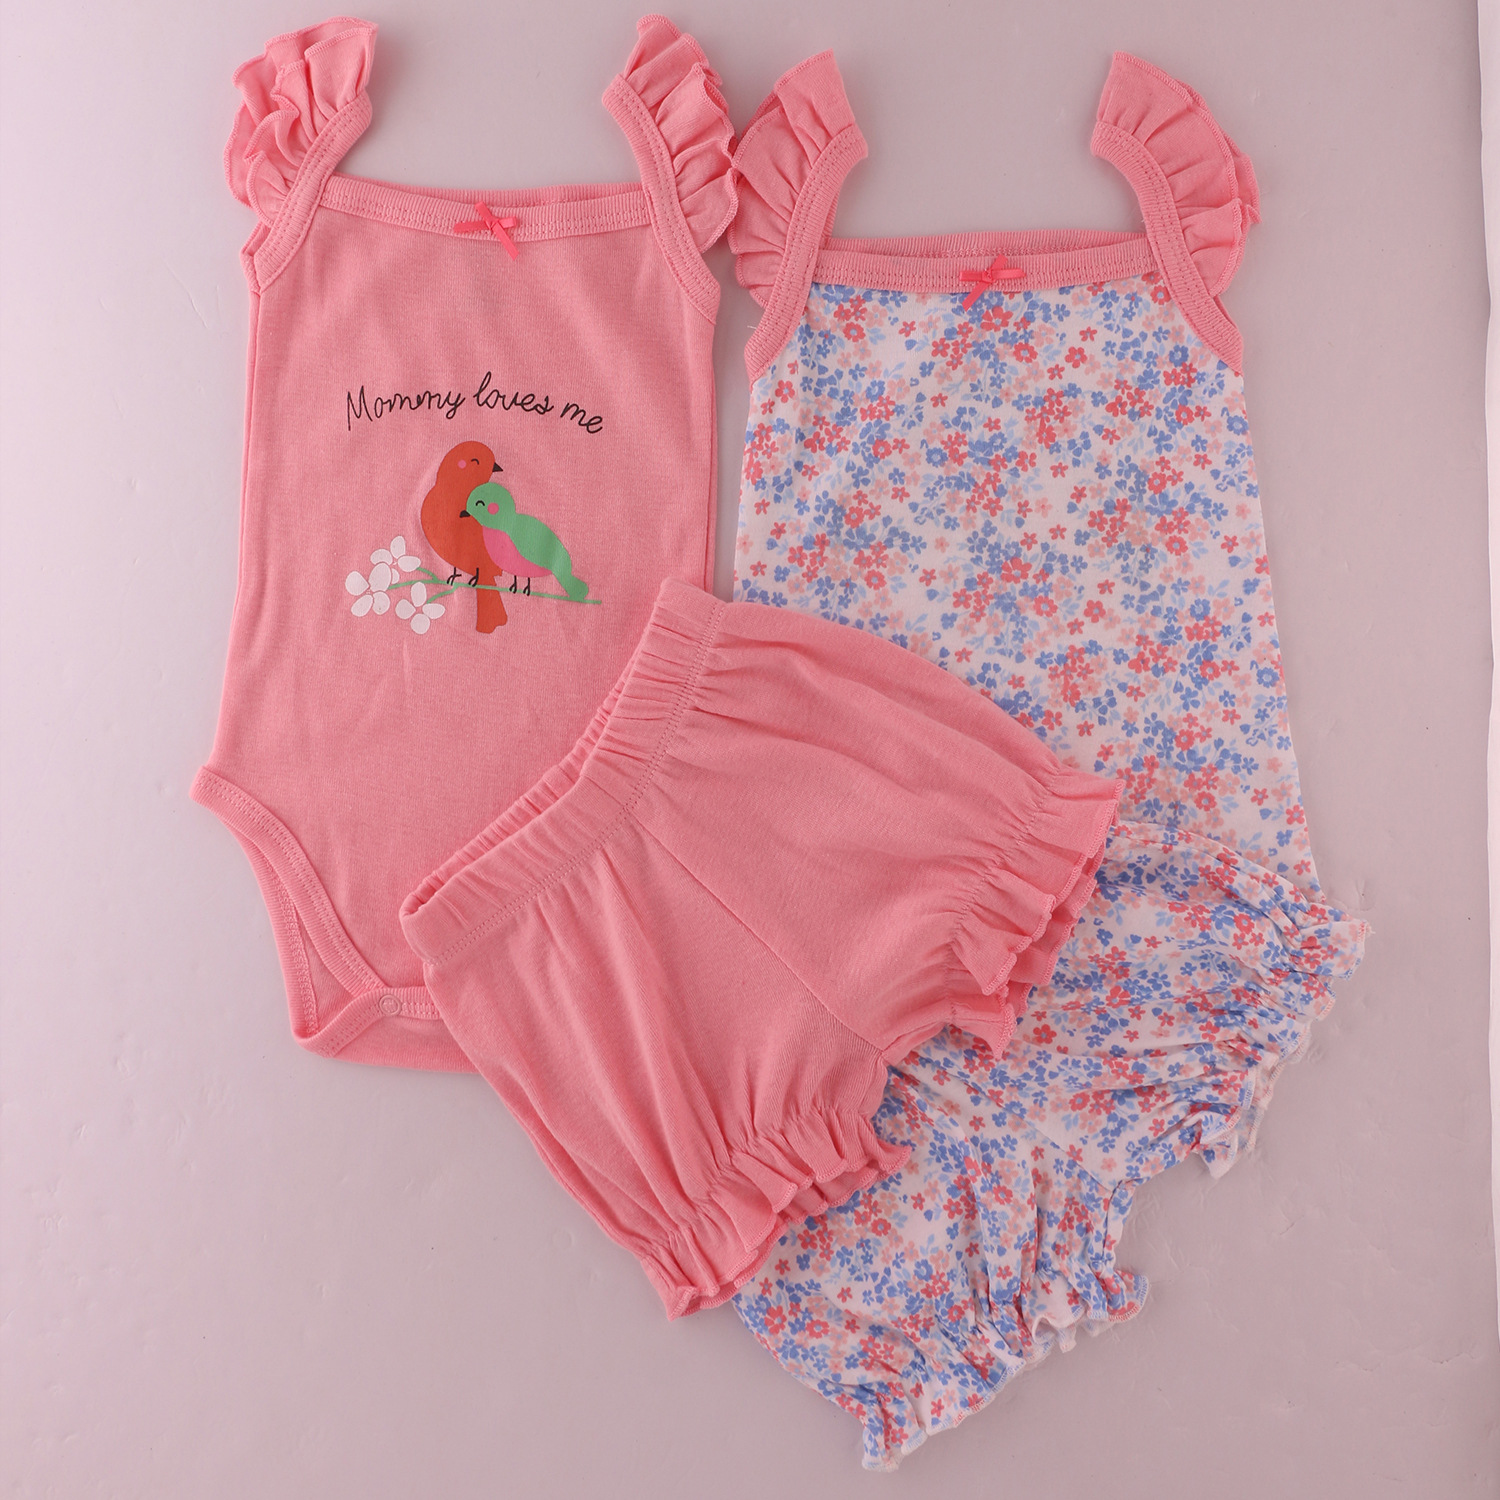 summer Cute baby girls Clothing Sets cotton Fashion printing baby clothes Newborn girl 4pcs suit 0-24month infant clothes